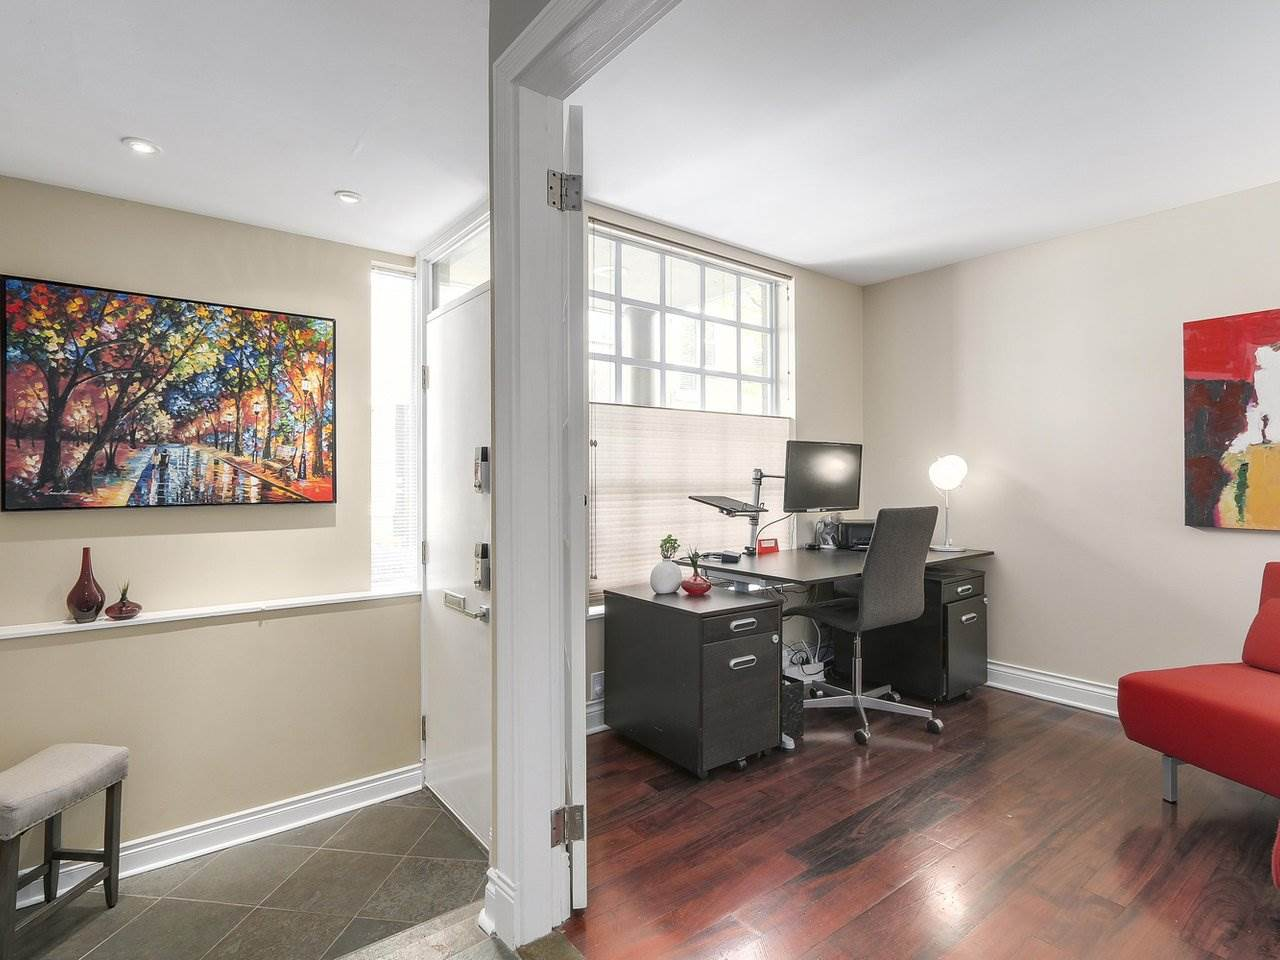 "Photo 2: 828 W 7TH Avenue in Vancouver: Fairview VW Townhouse for sale in ""Casa del Arroyo"" (Vancouver West)  : MLS(r) # R2171193"